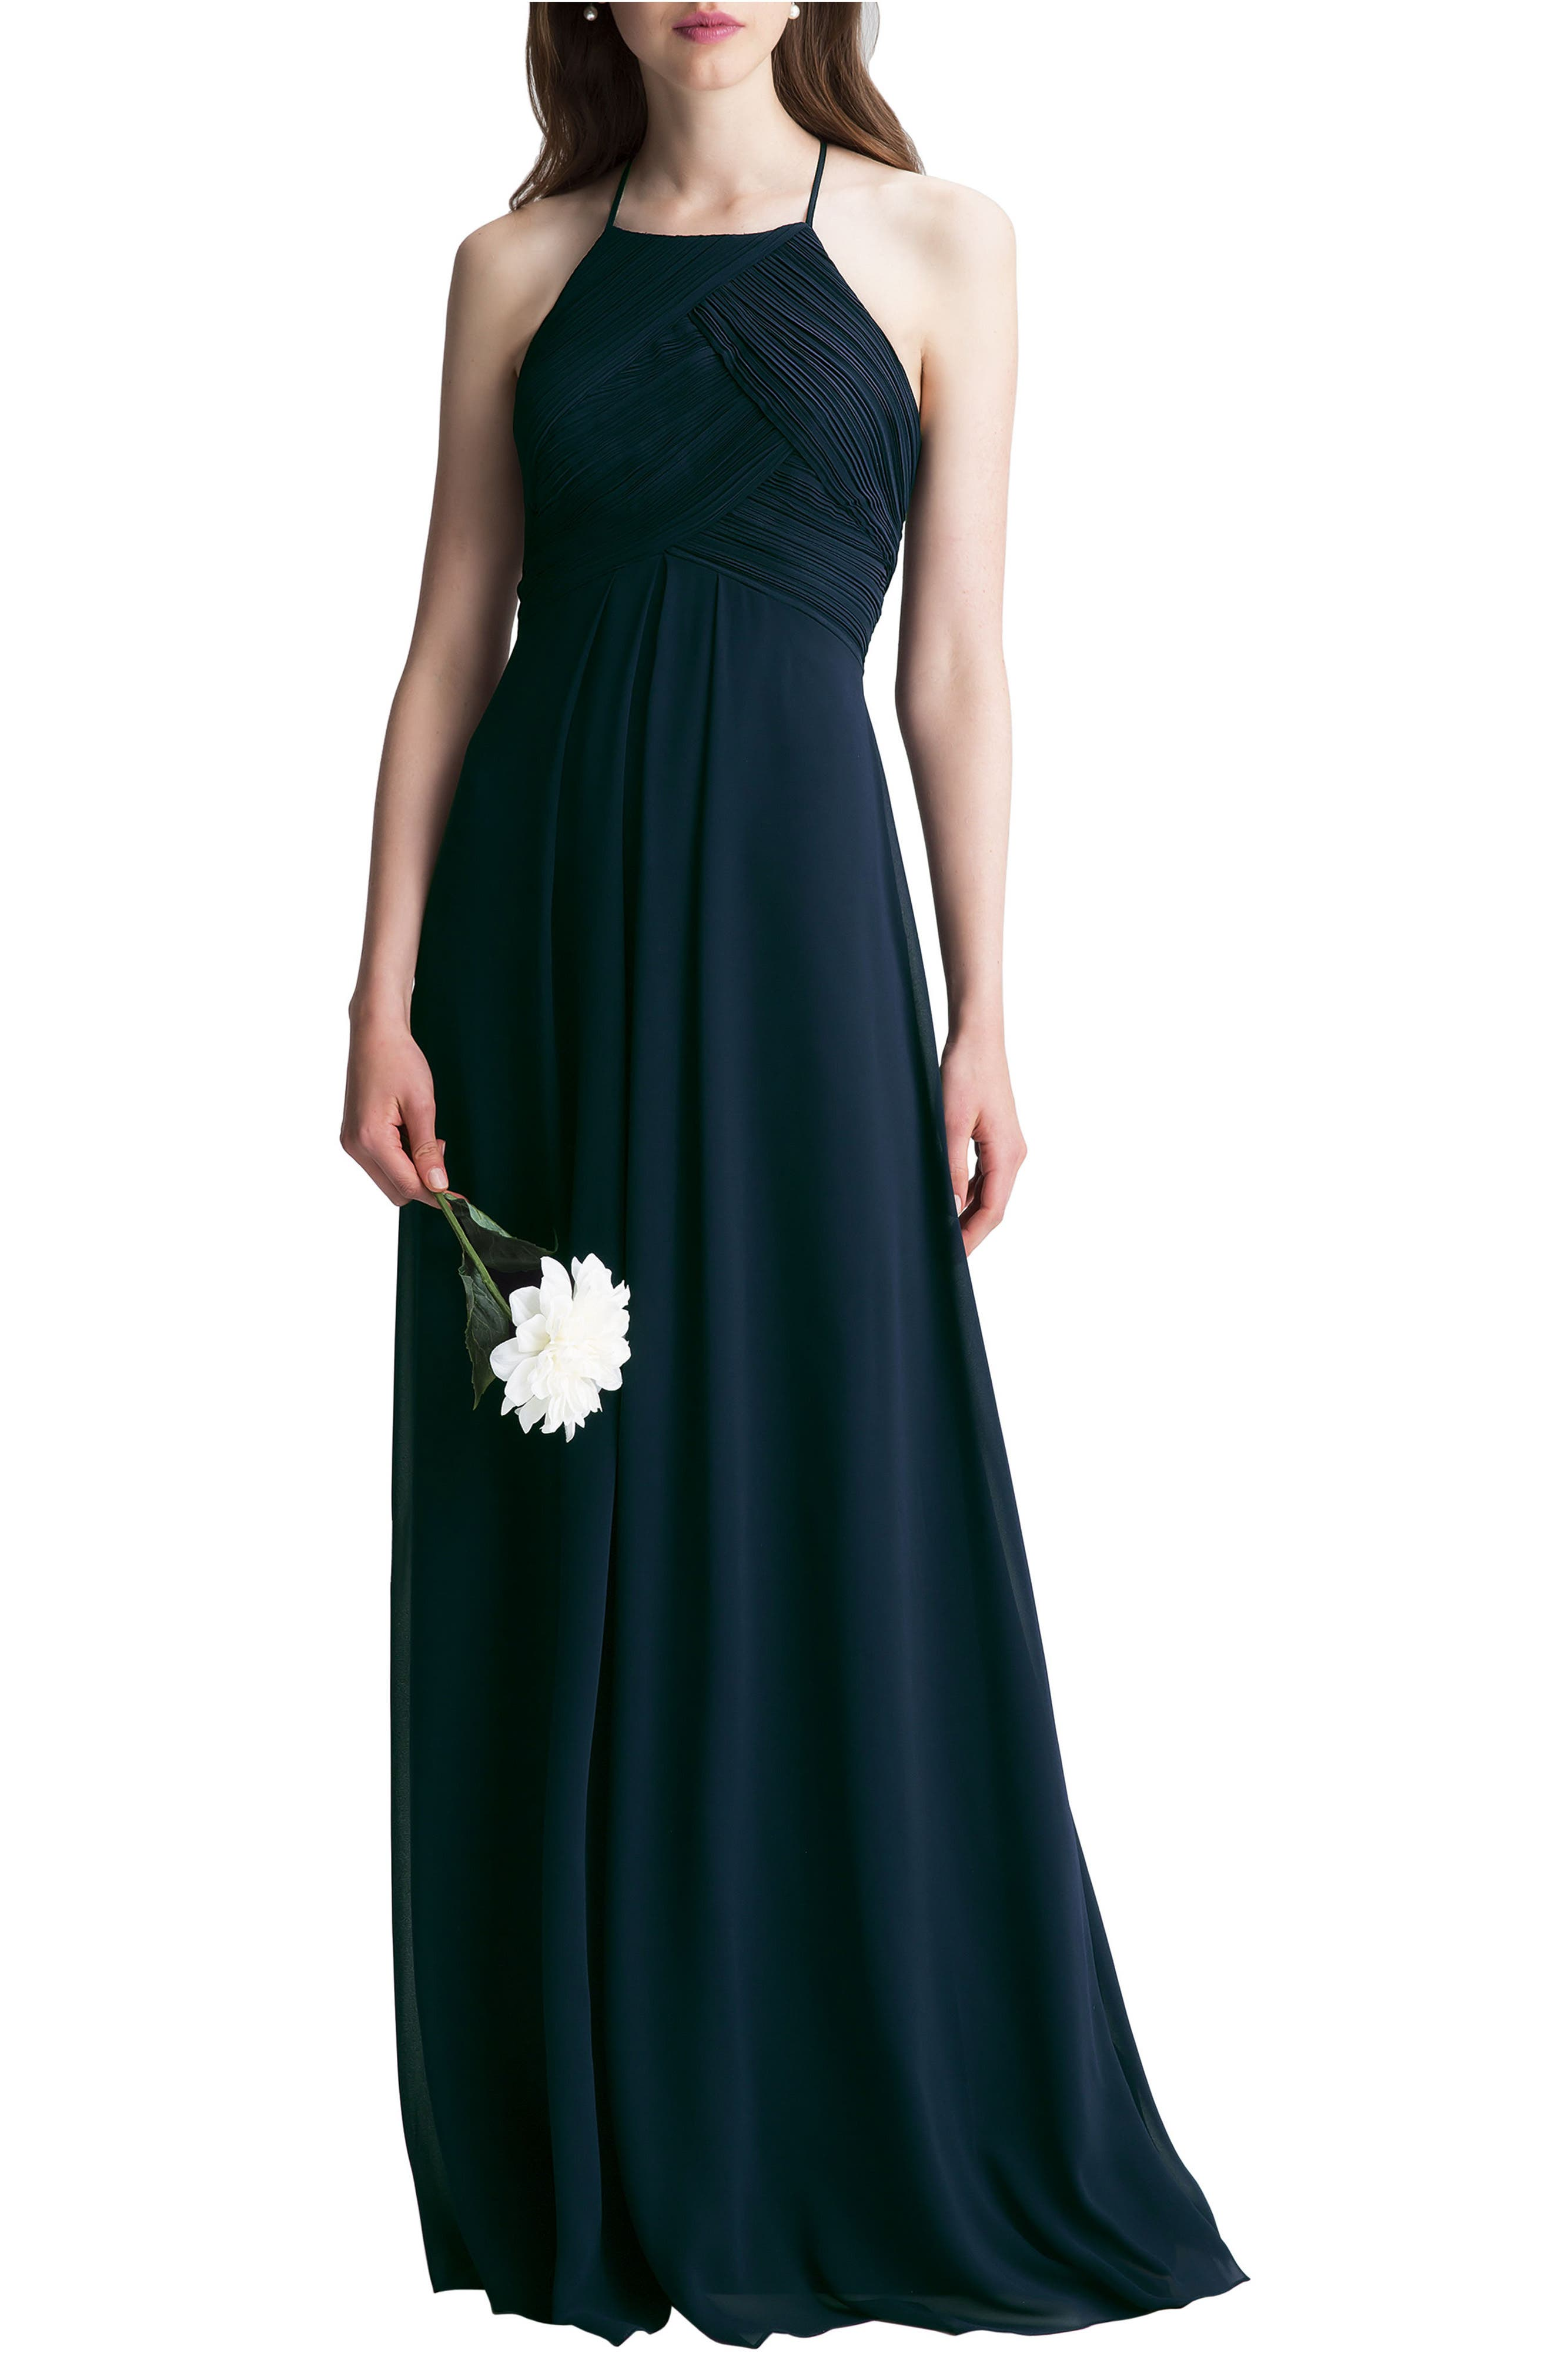 Alternate Image 1 Selected - #Levkoff Halter Chiffon A-Line Gown